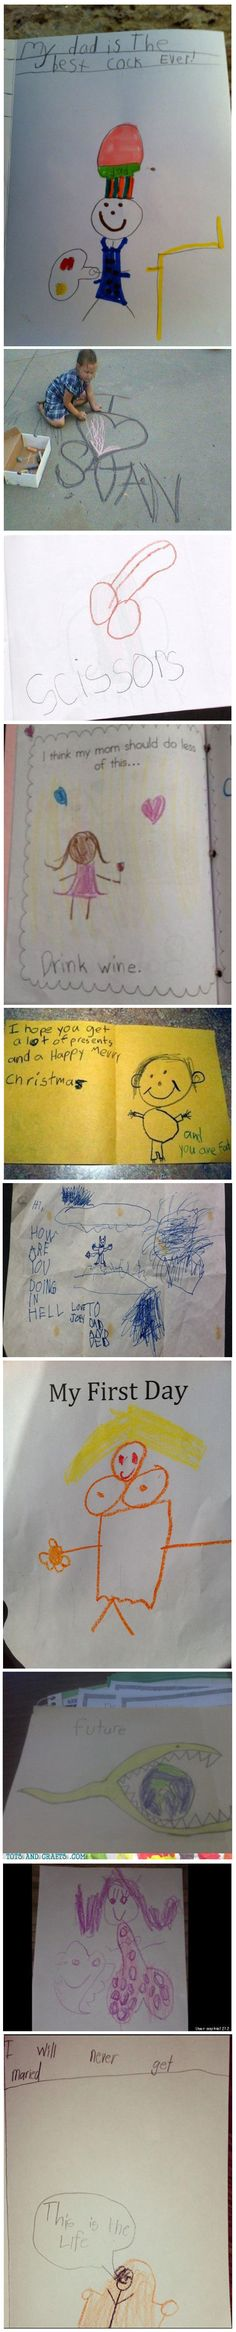 10 Unintentionally Inappropriate Drawings by Kids   No Need to ApplyNo Need to Apply